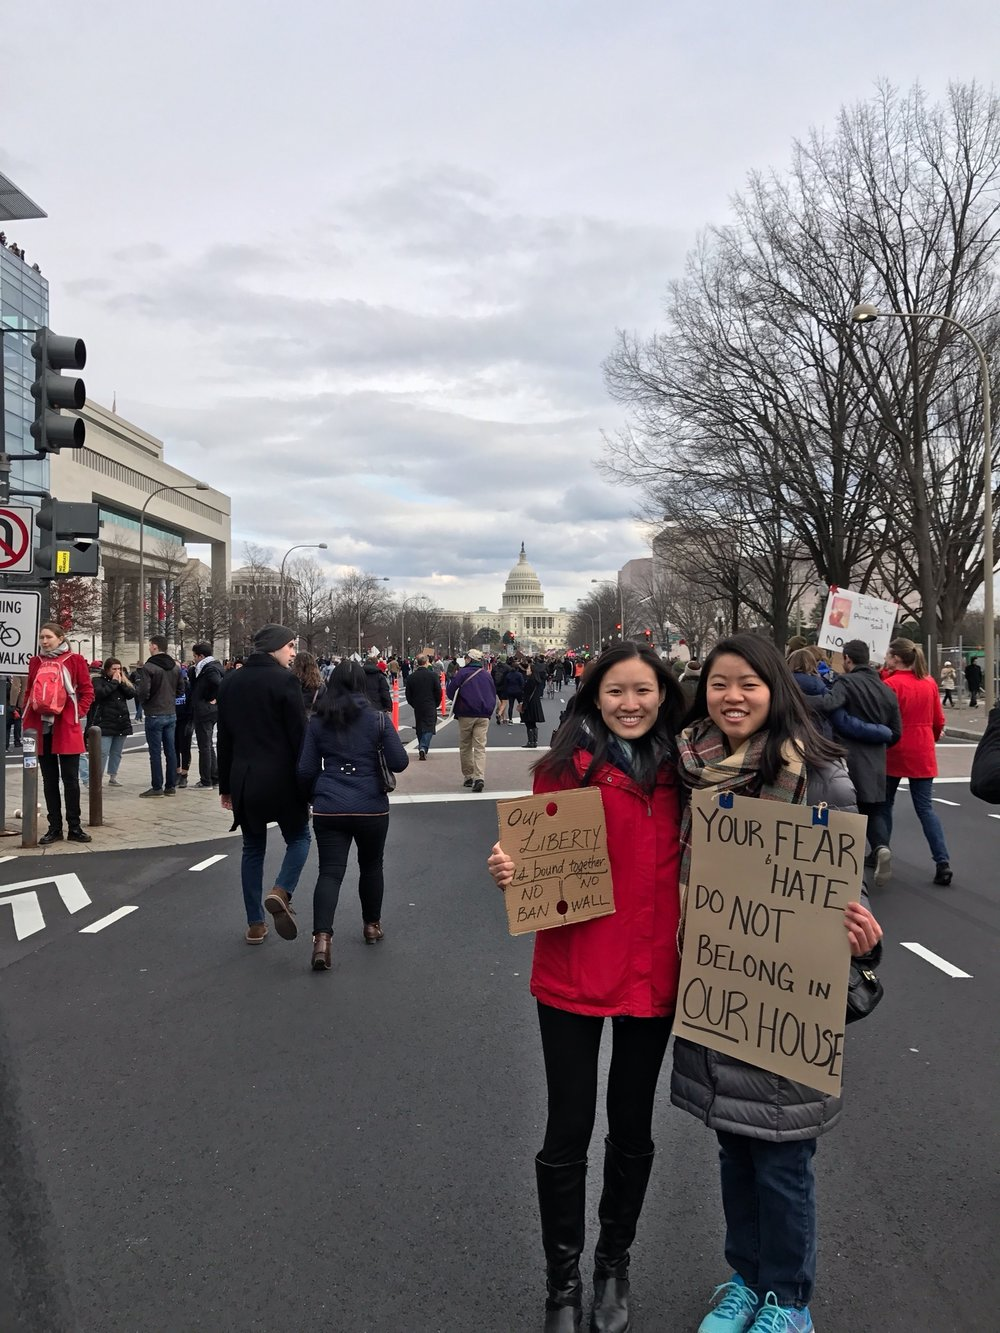 Picture of Tiffany Hu at a political march in Washington, D.C.